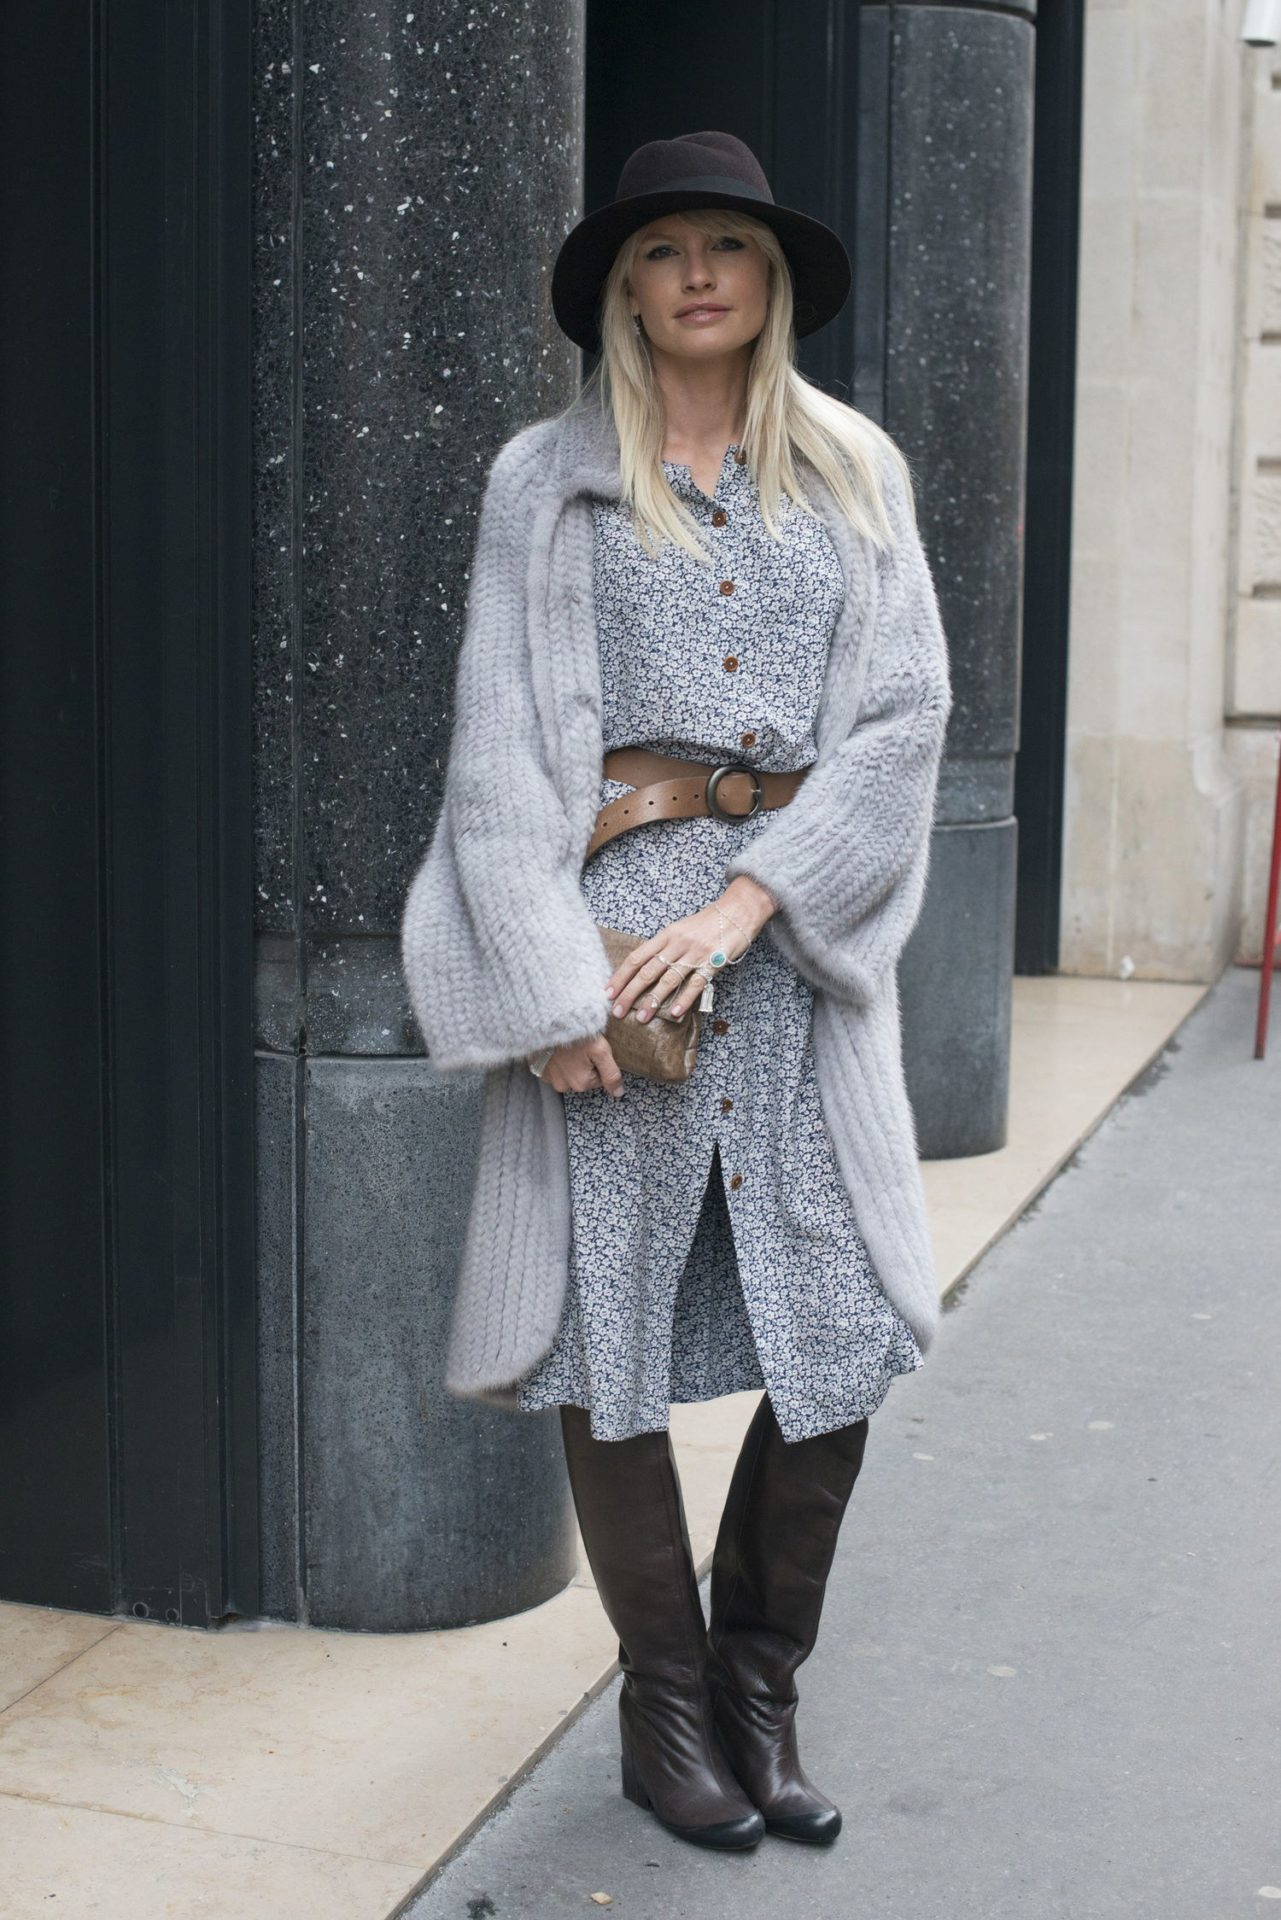 fashion-2014-02-yana-raskovalova-long-dior-sweater-dress-layering-outfit-ideas-main